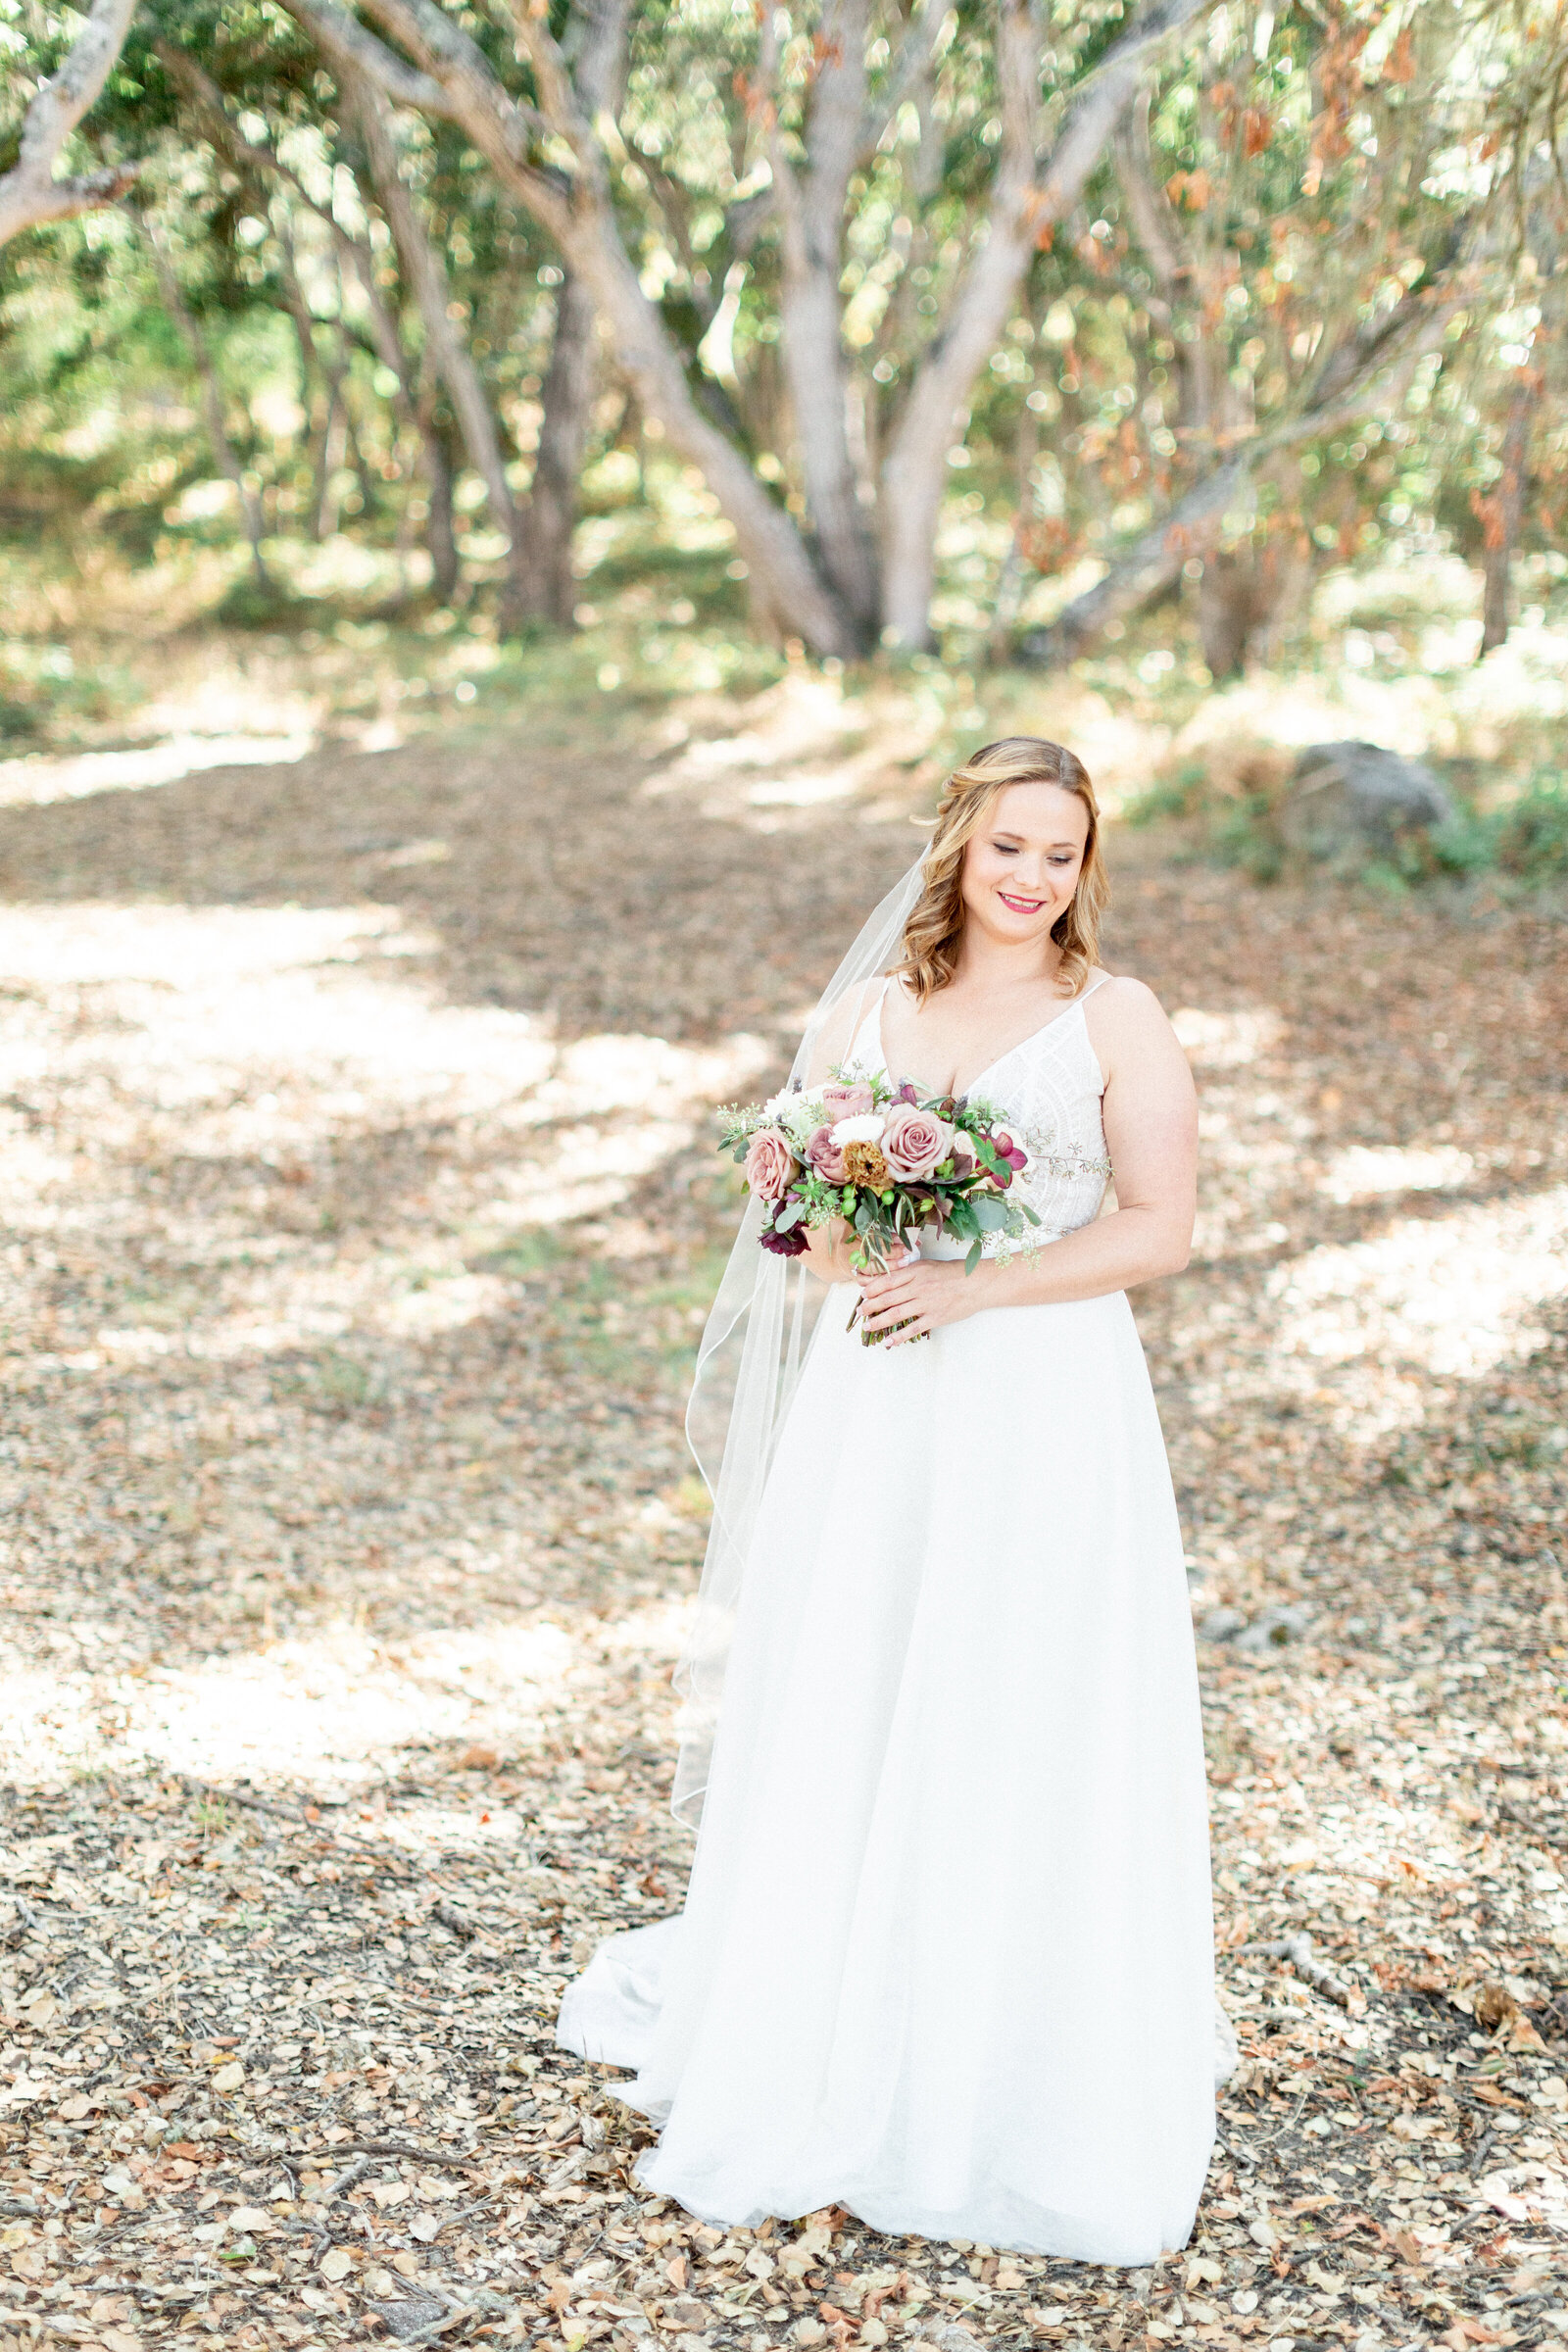 larissa-cleveland-elope-eleopement-intimate-wedding-photographer-san-francisco-napa-carmel-091